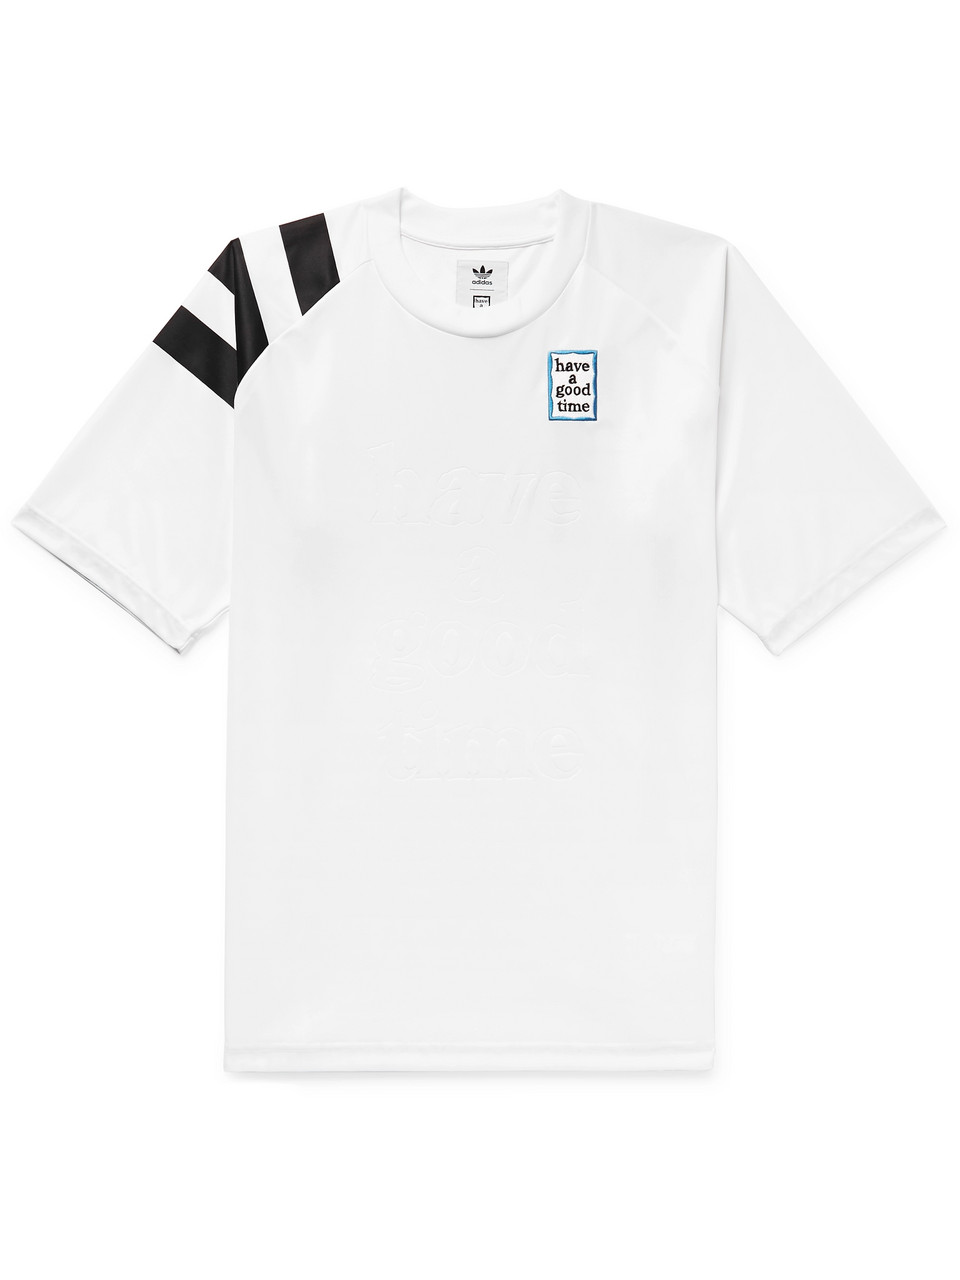 adidas Consortium + Have a Good Time Logo-Embroidered Debossed Tech-Jersey T-Shirt